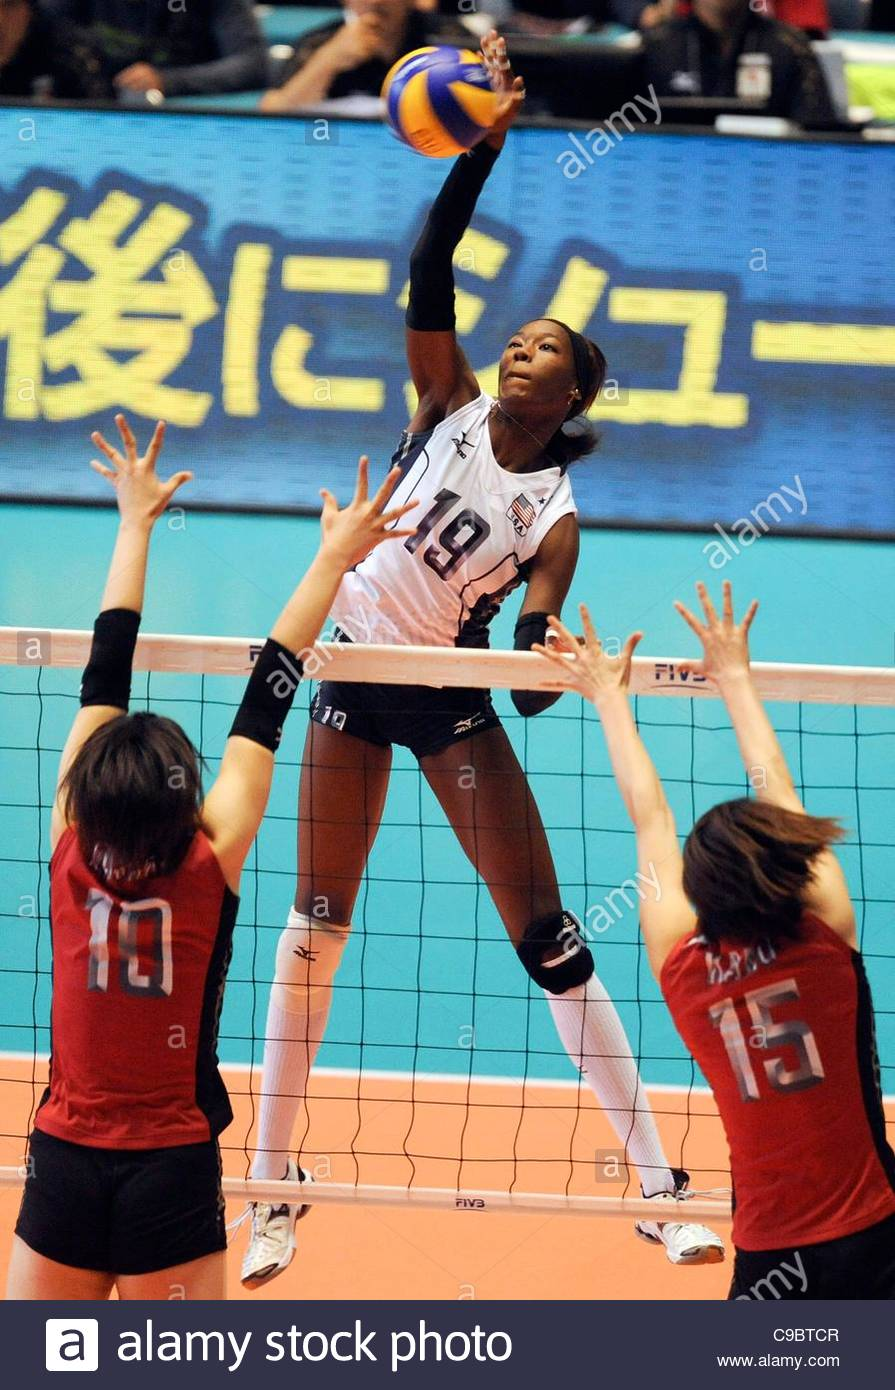 role model destinee hooker The fab freshman: 'iolani's oglivie named poy destinee hooker for the great sets and being a great role model.